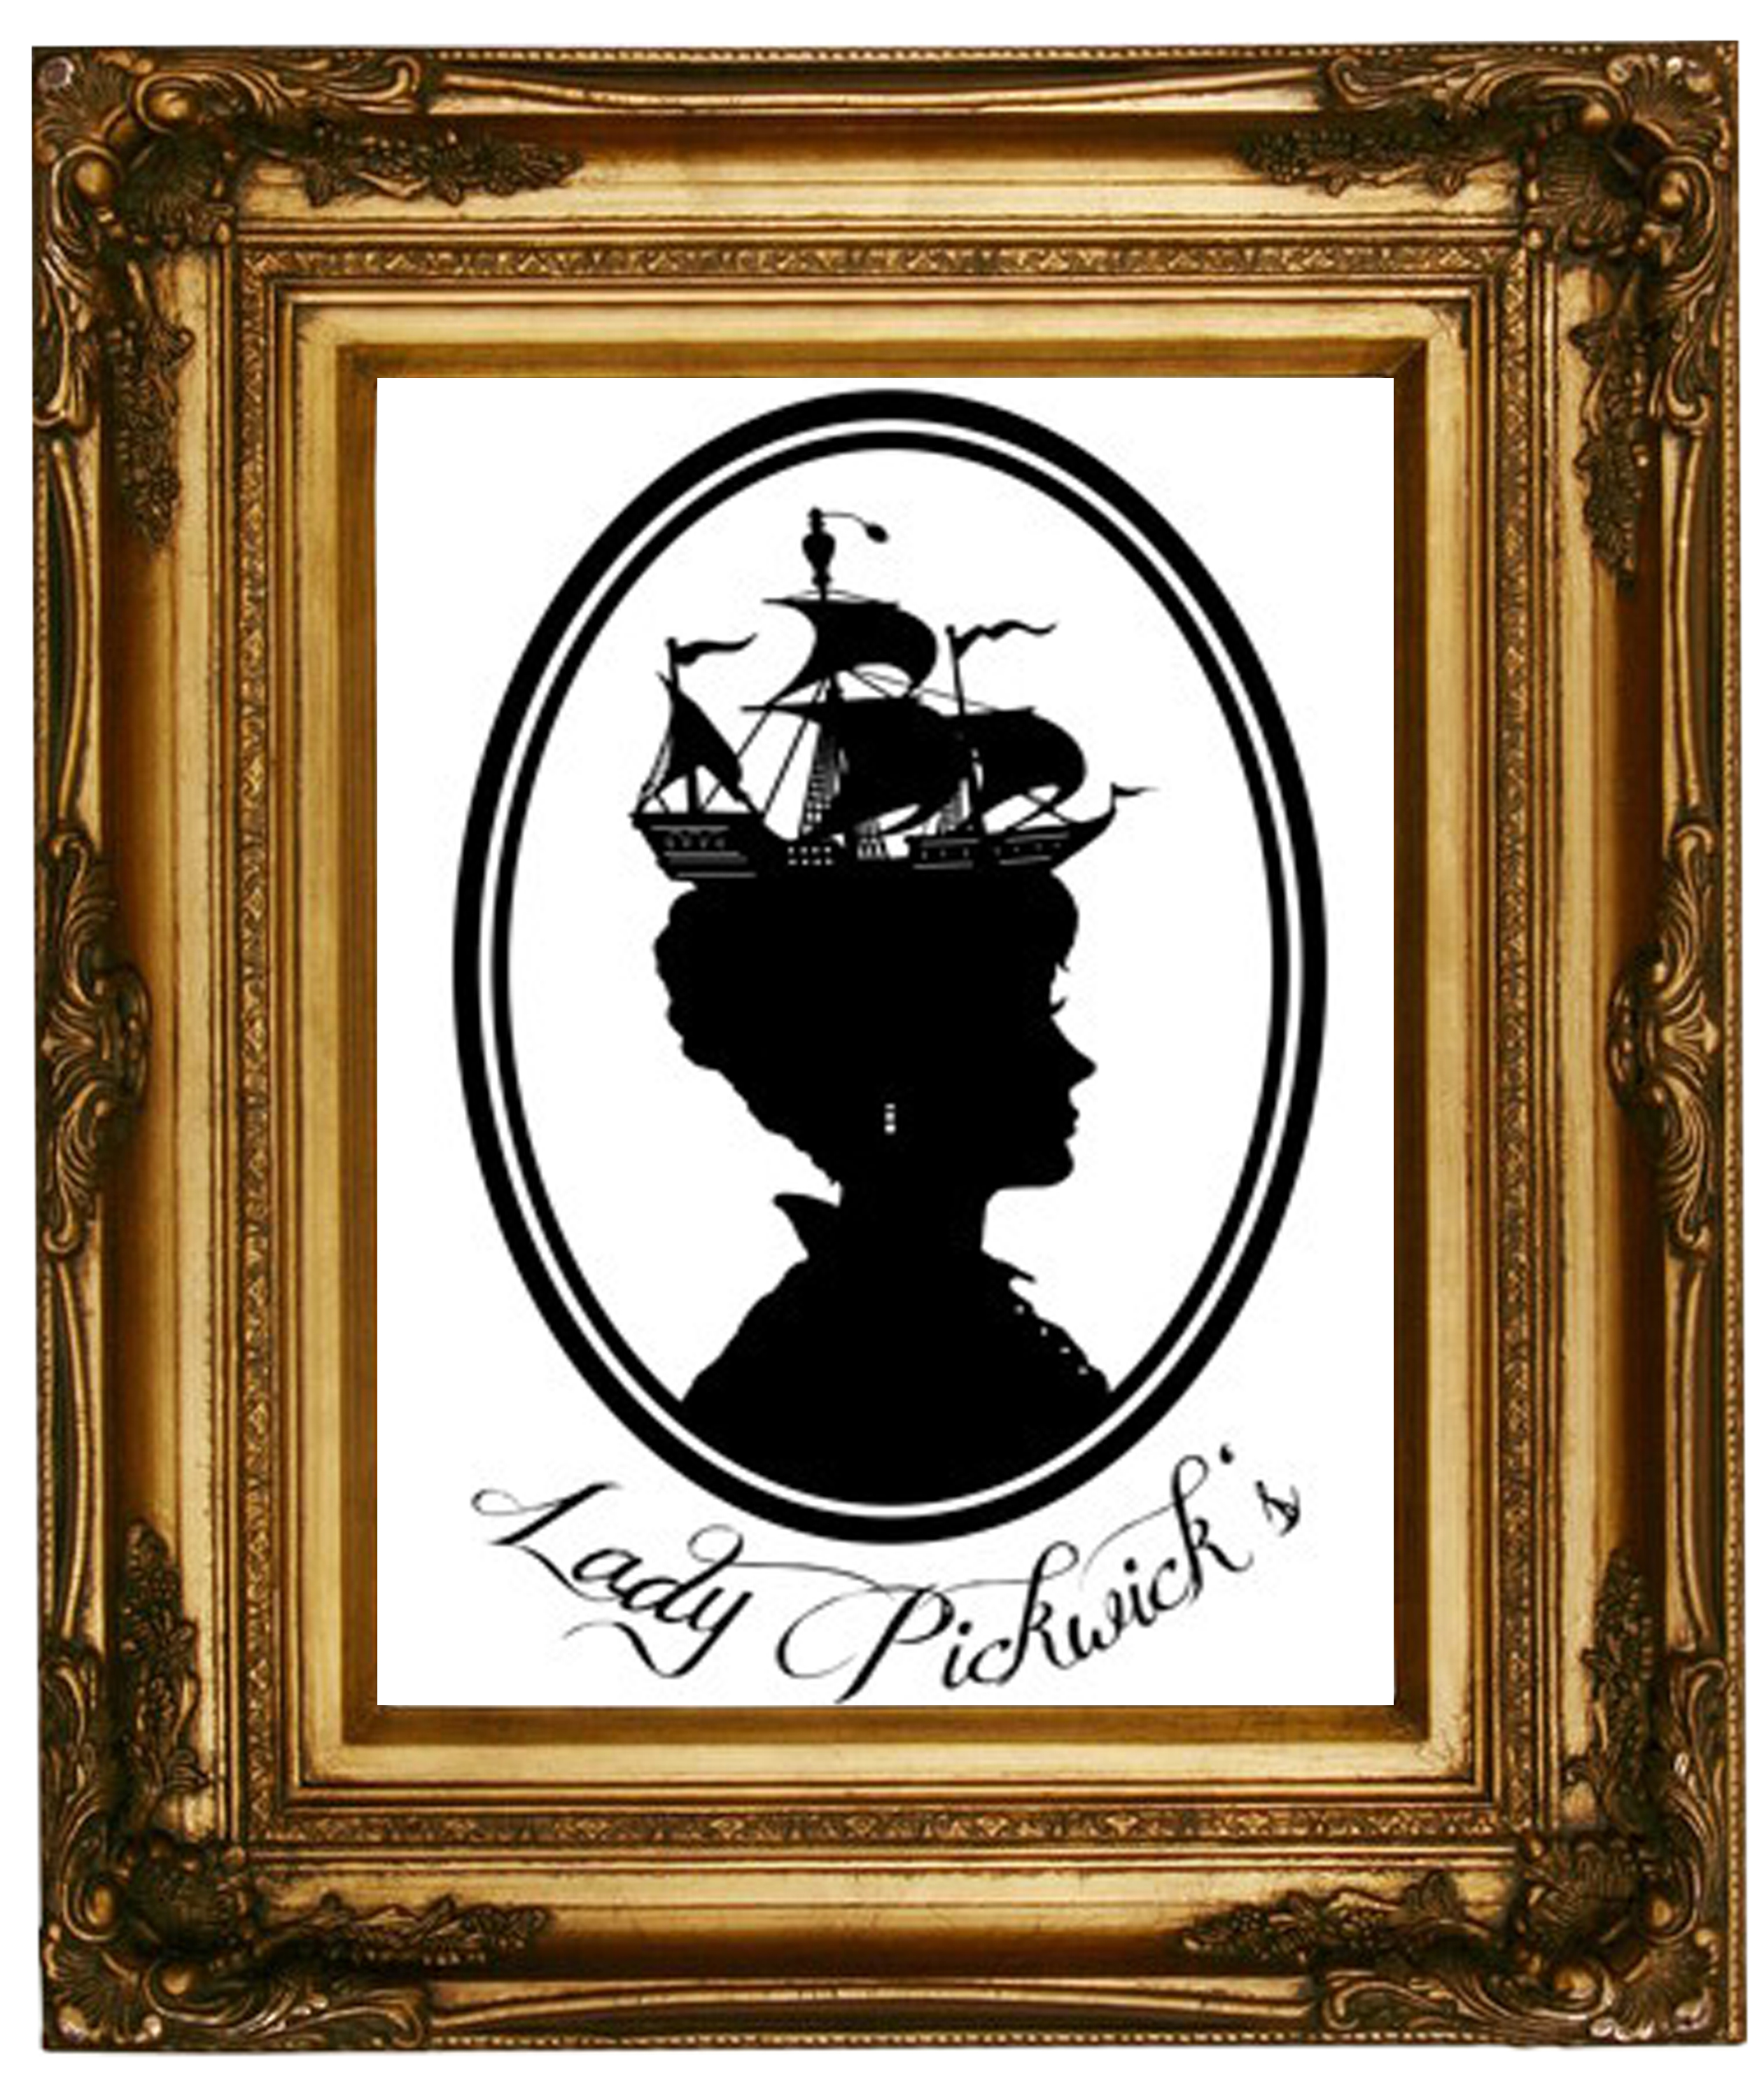 Lady Pickwick's